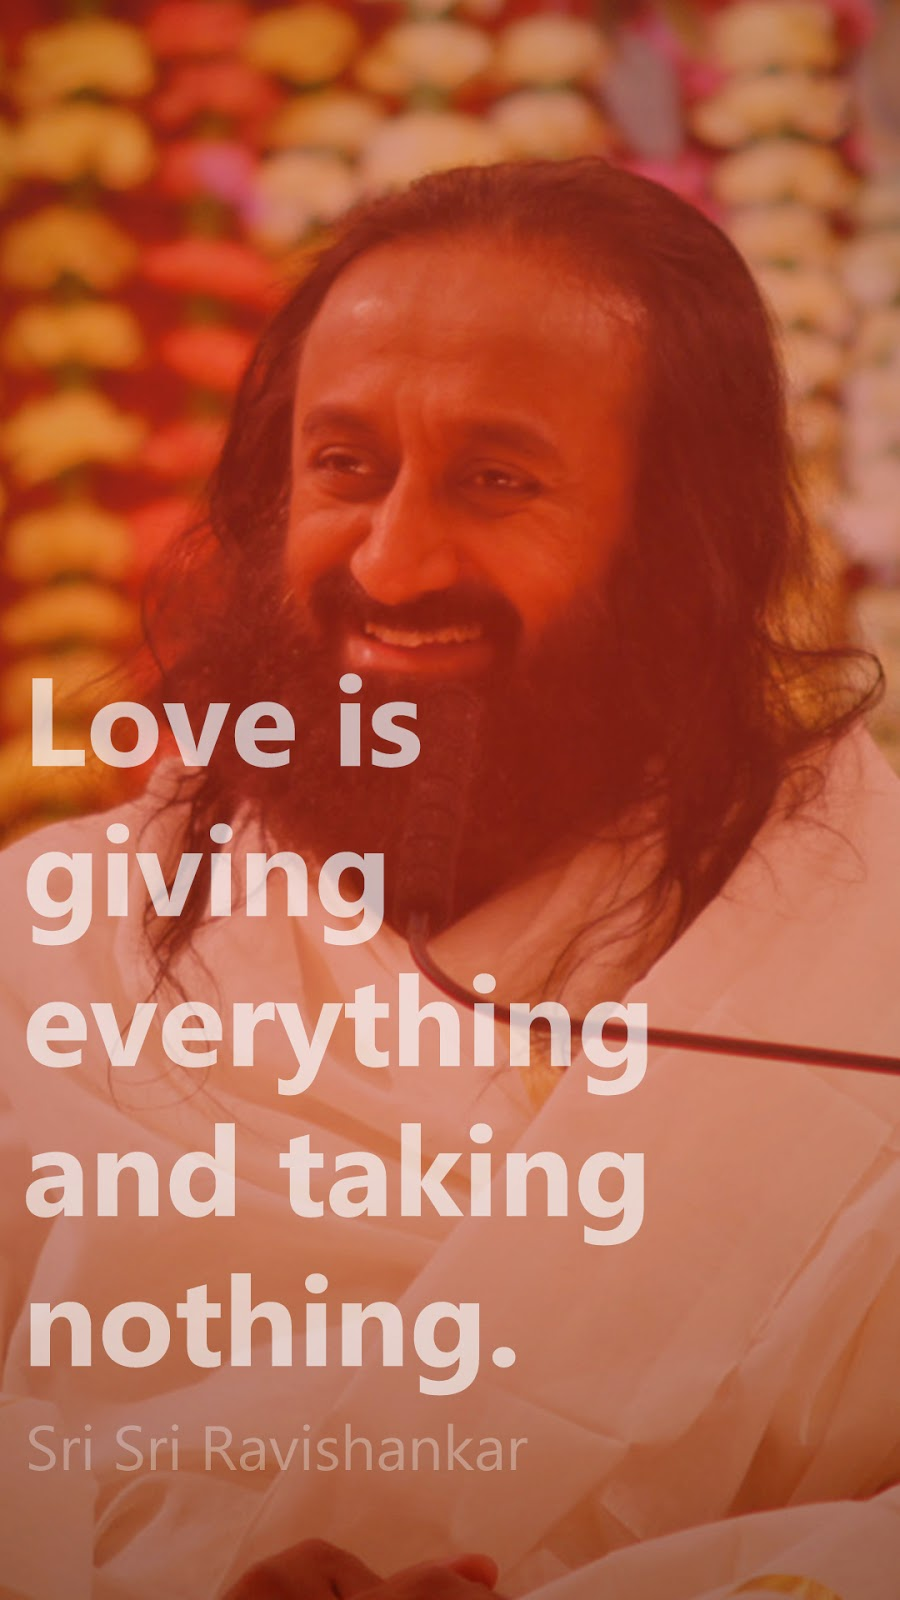 Mercedes Benz Houston >> Download Sri Sri Ravi Shankar Pictures Wallpapers Gallery